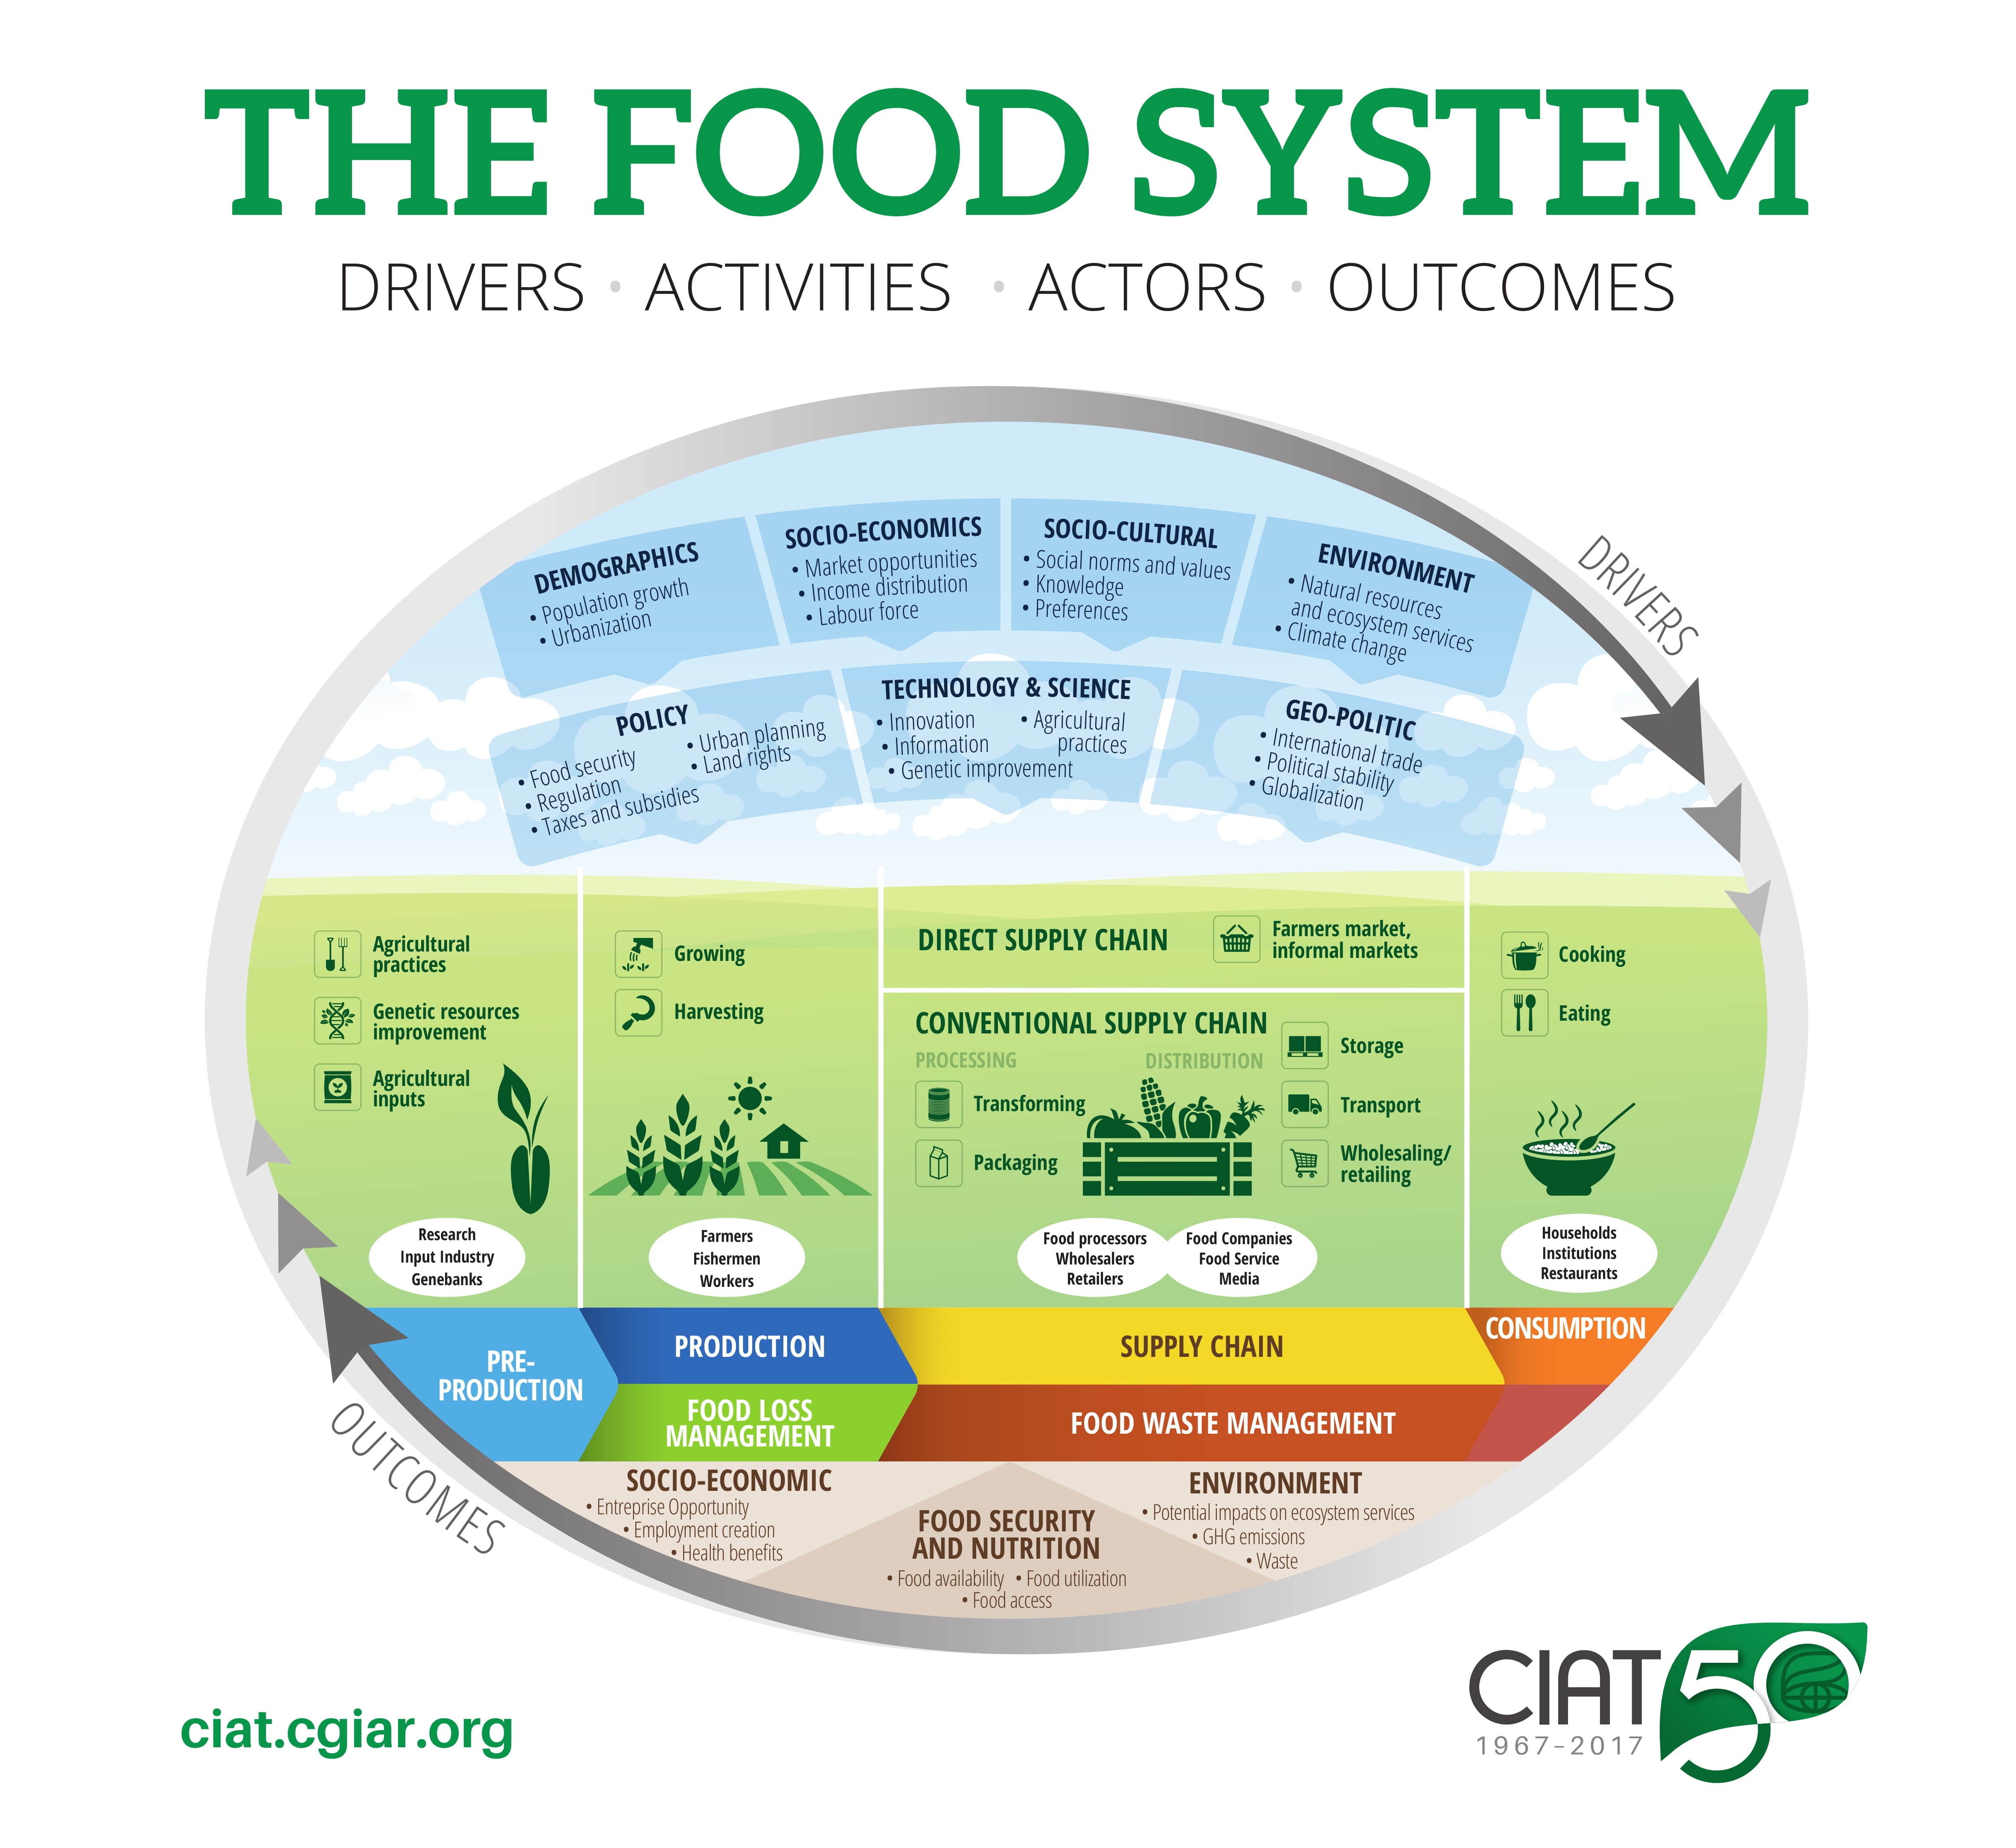 CIAT's Food System Diagram